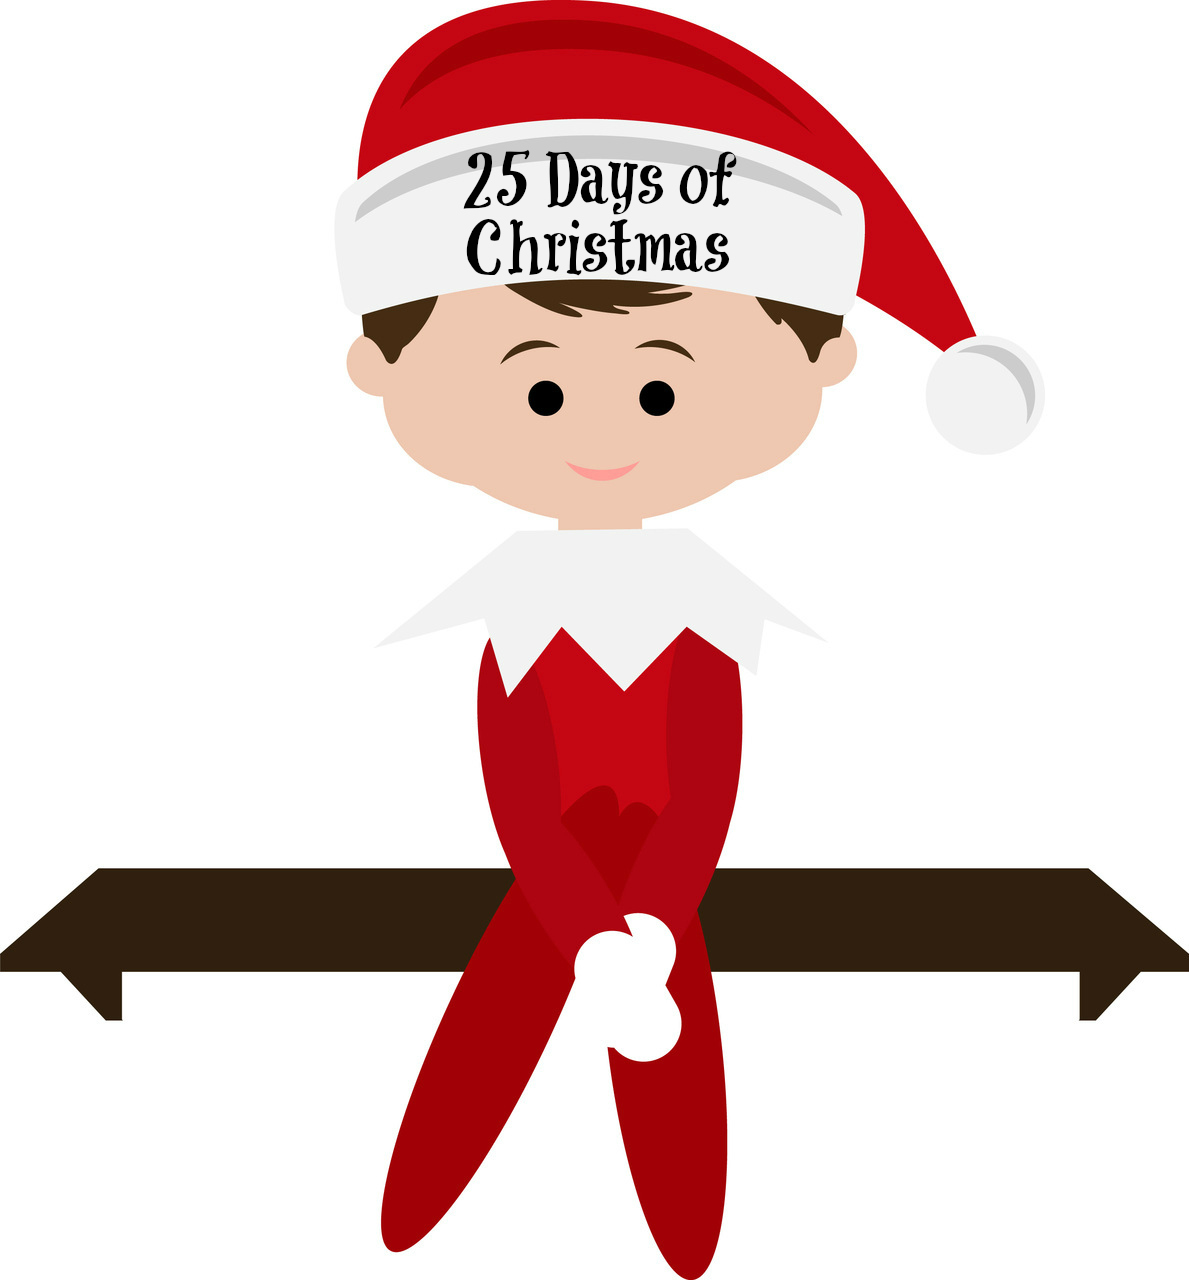 Dworianyn Love Nest: 25 Days of Christmas: Day 2 - Jingle Bells the Elf